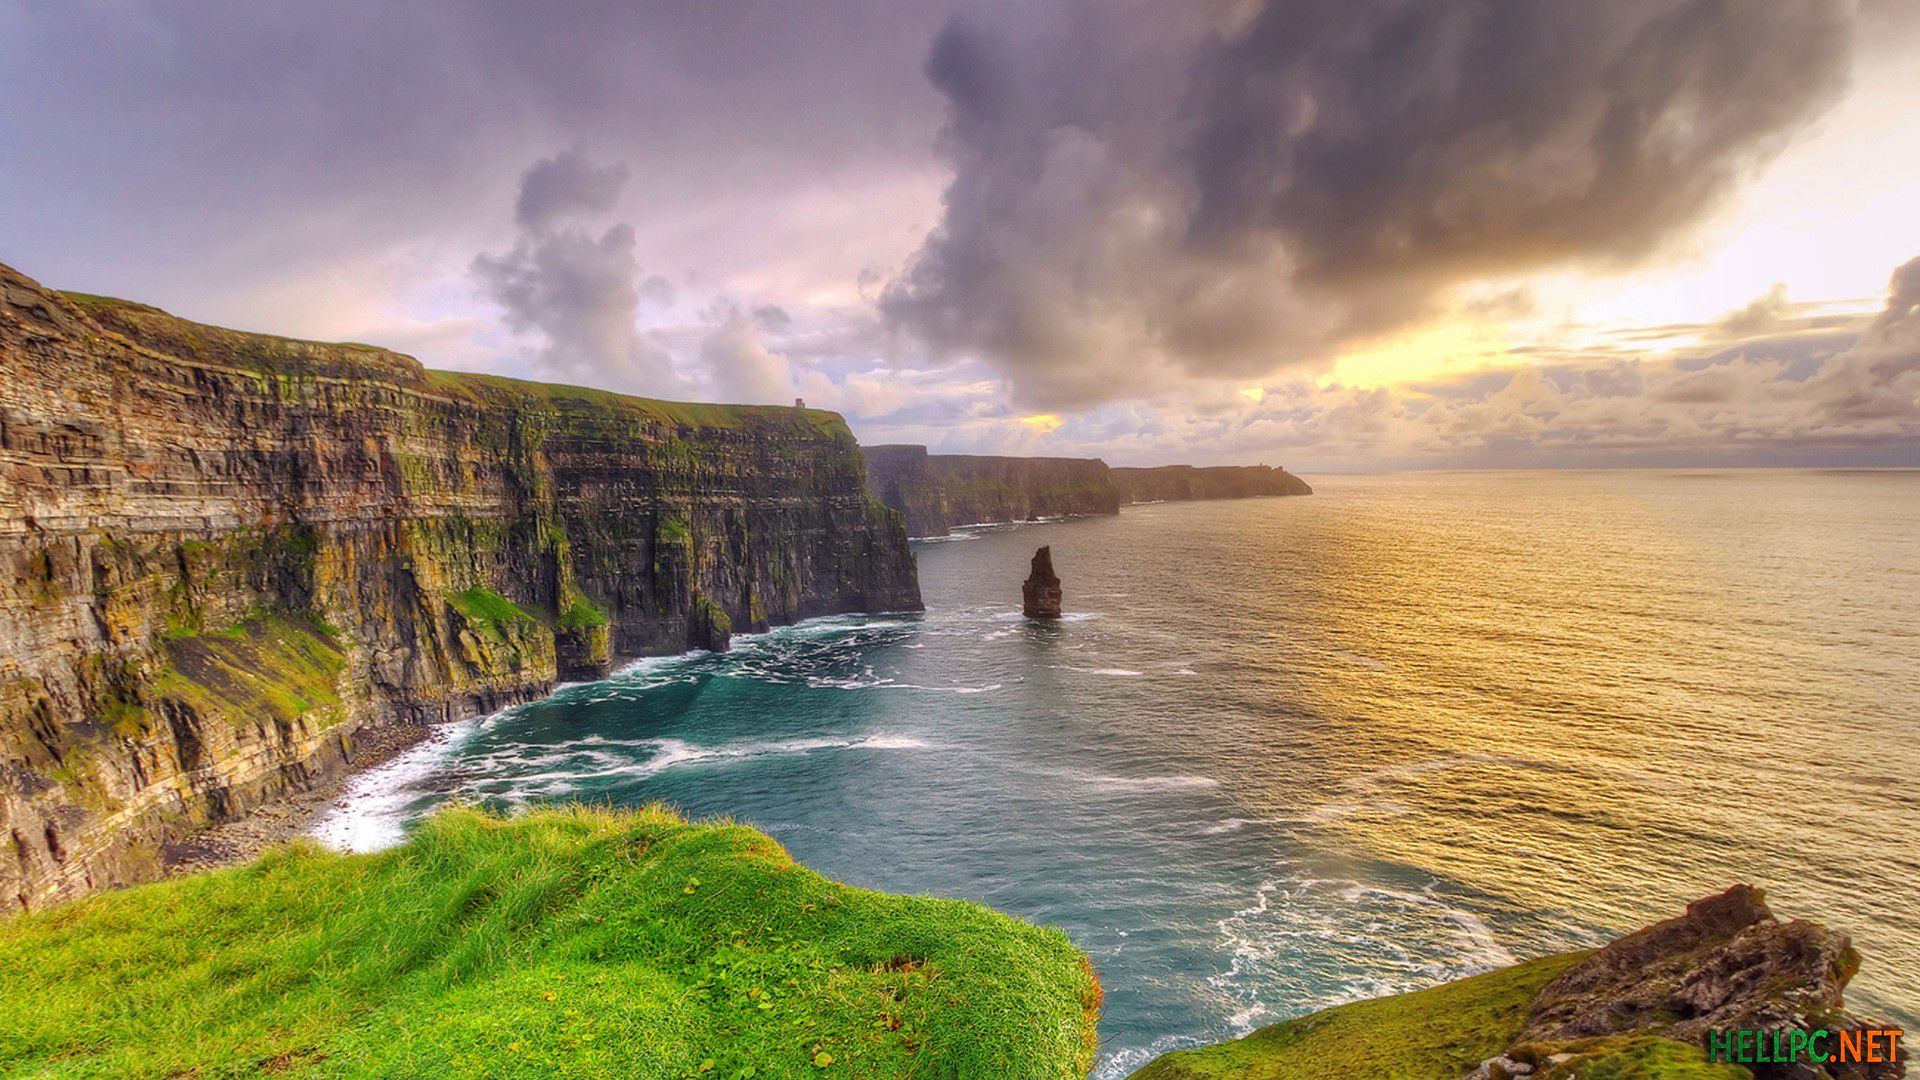 Download Best Windows Spotlight Lockscreen Wallpapers For Pc Hellpc Net Ireland Vacation Cliffs Of Moher Places To Go